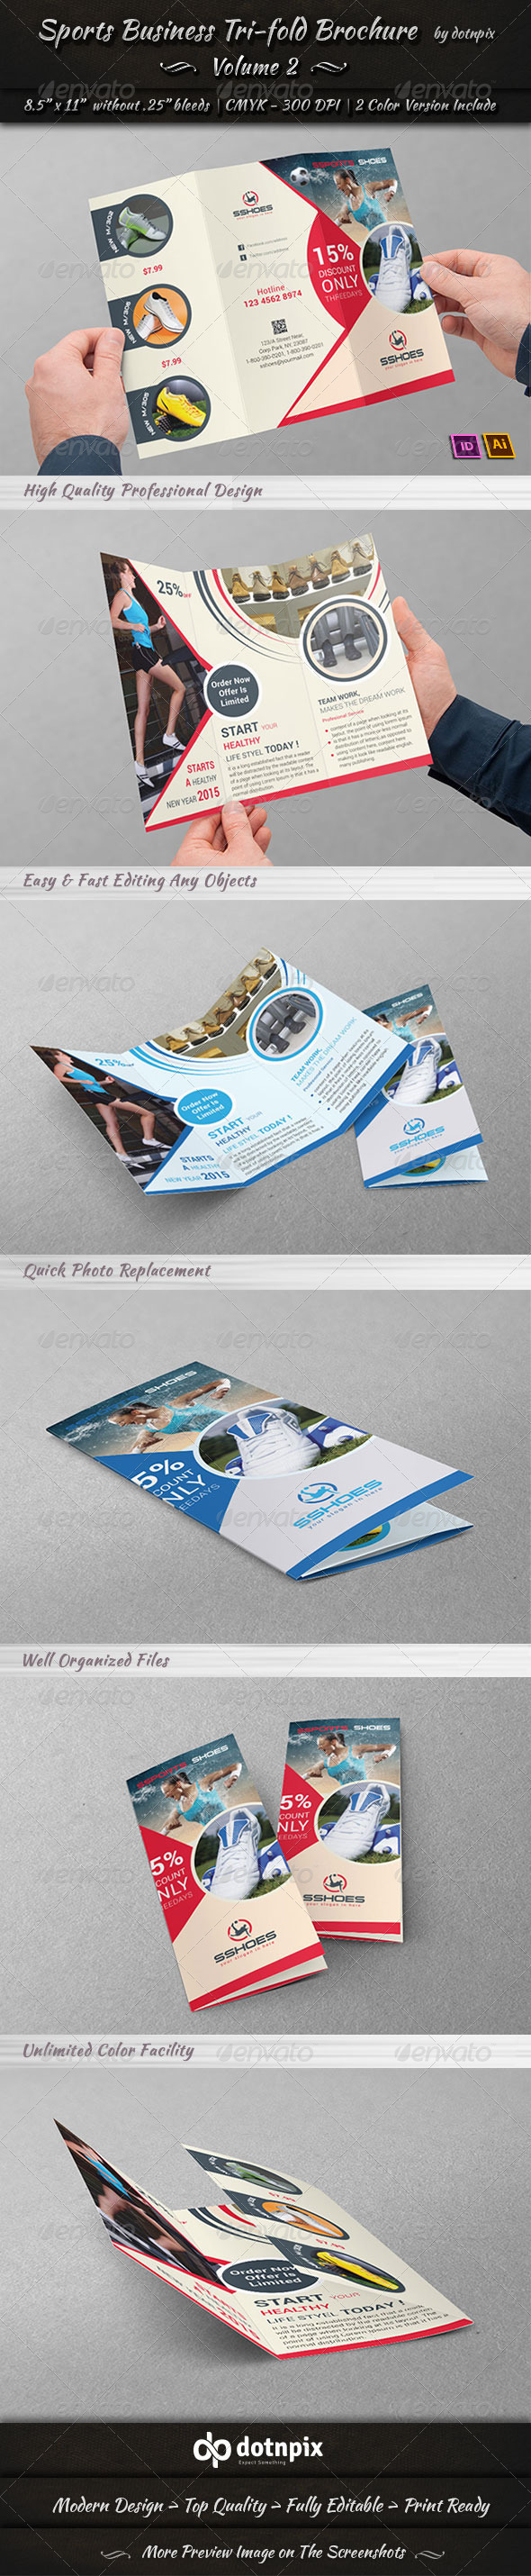 Sports Business TriFold Brochure | Volume 2 - Corporate Brochures